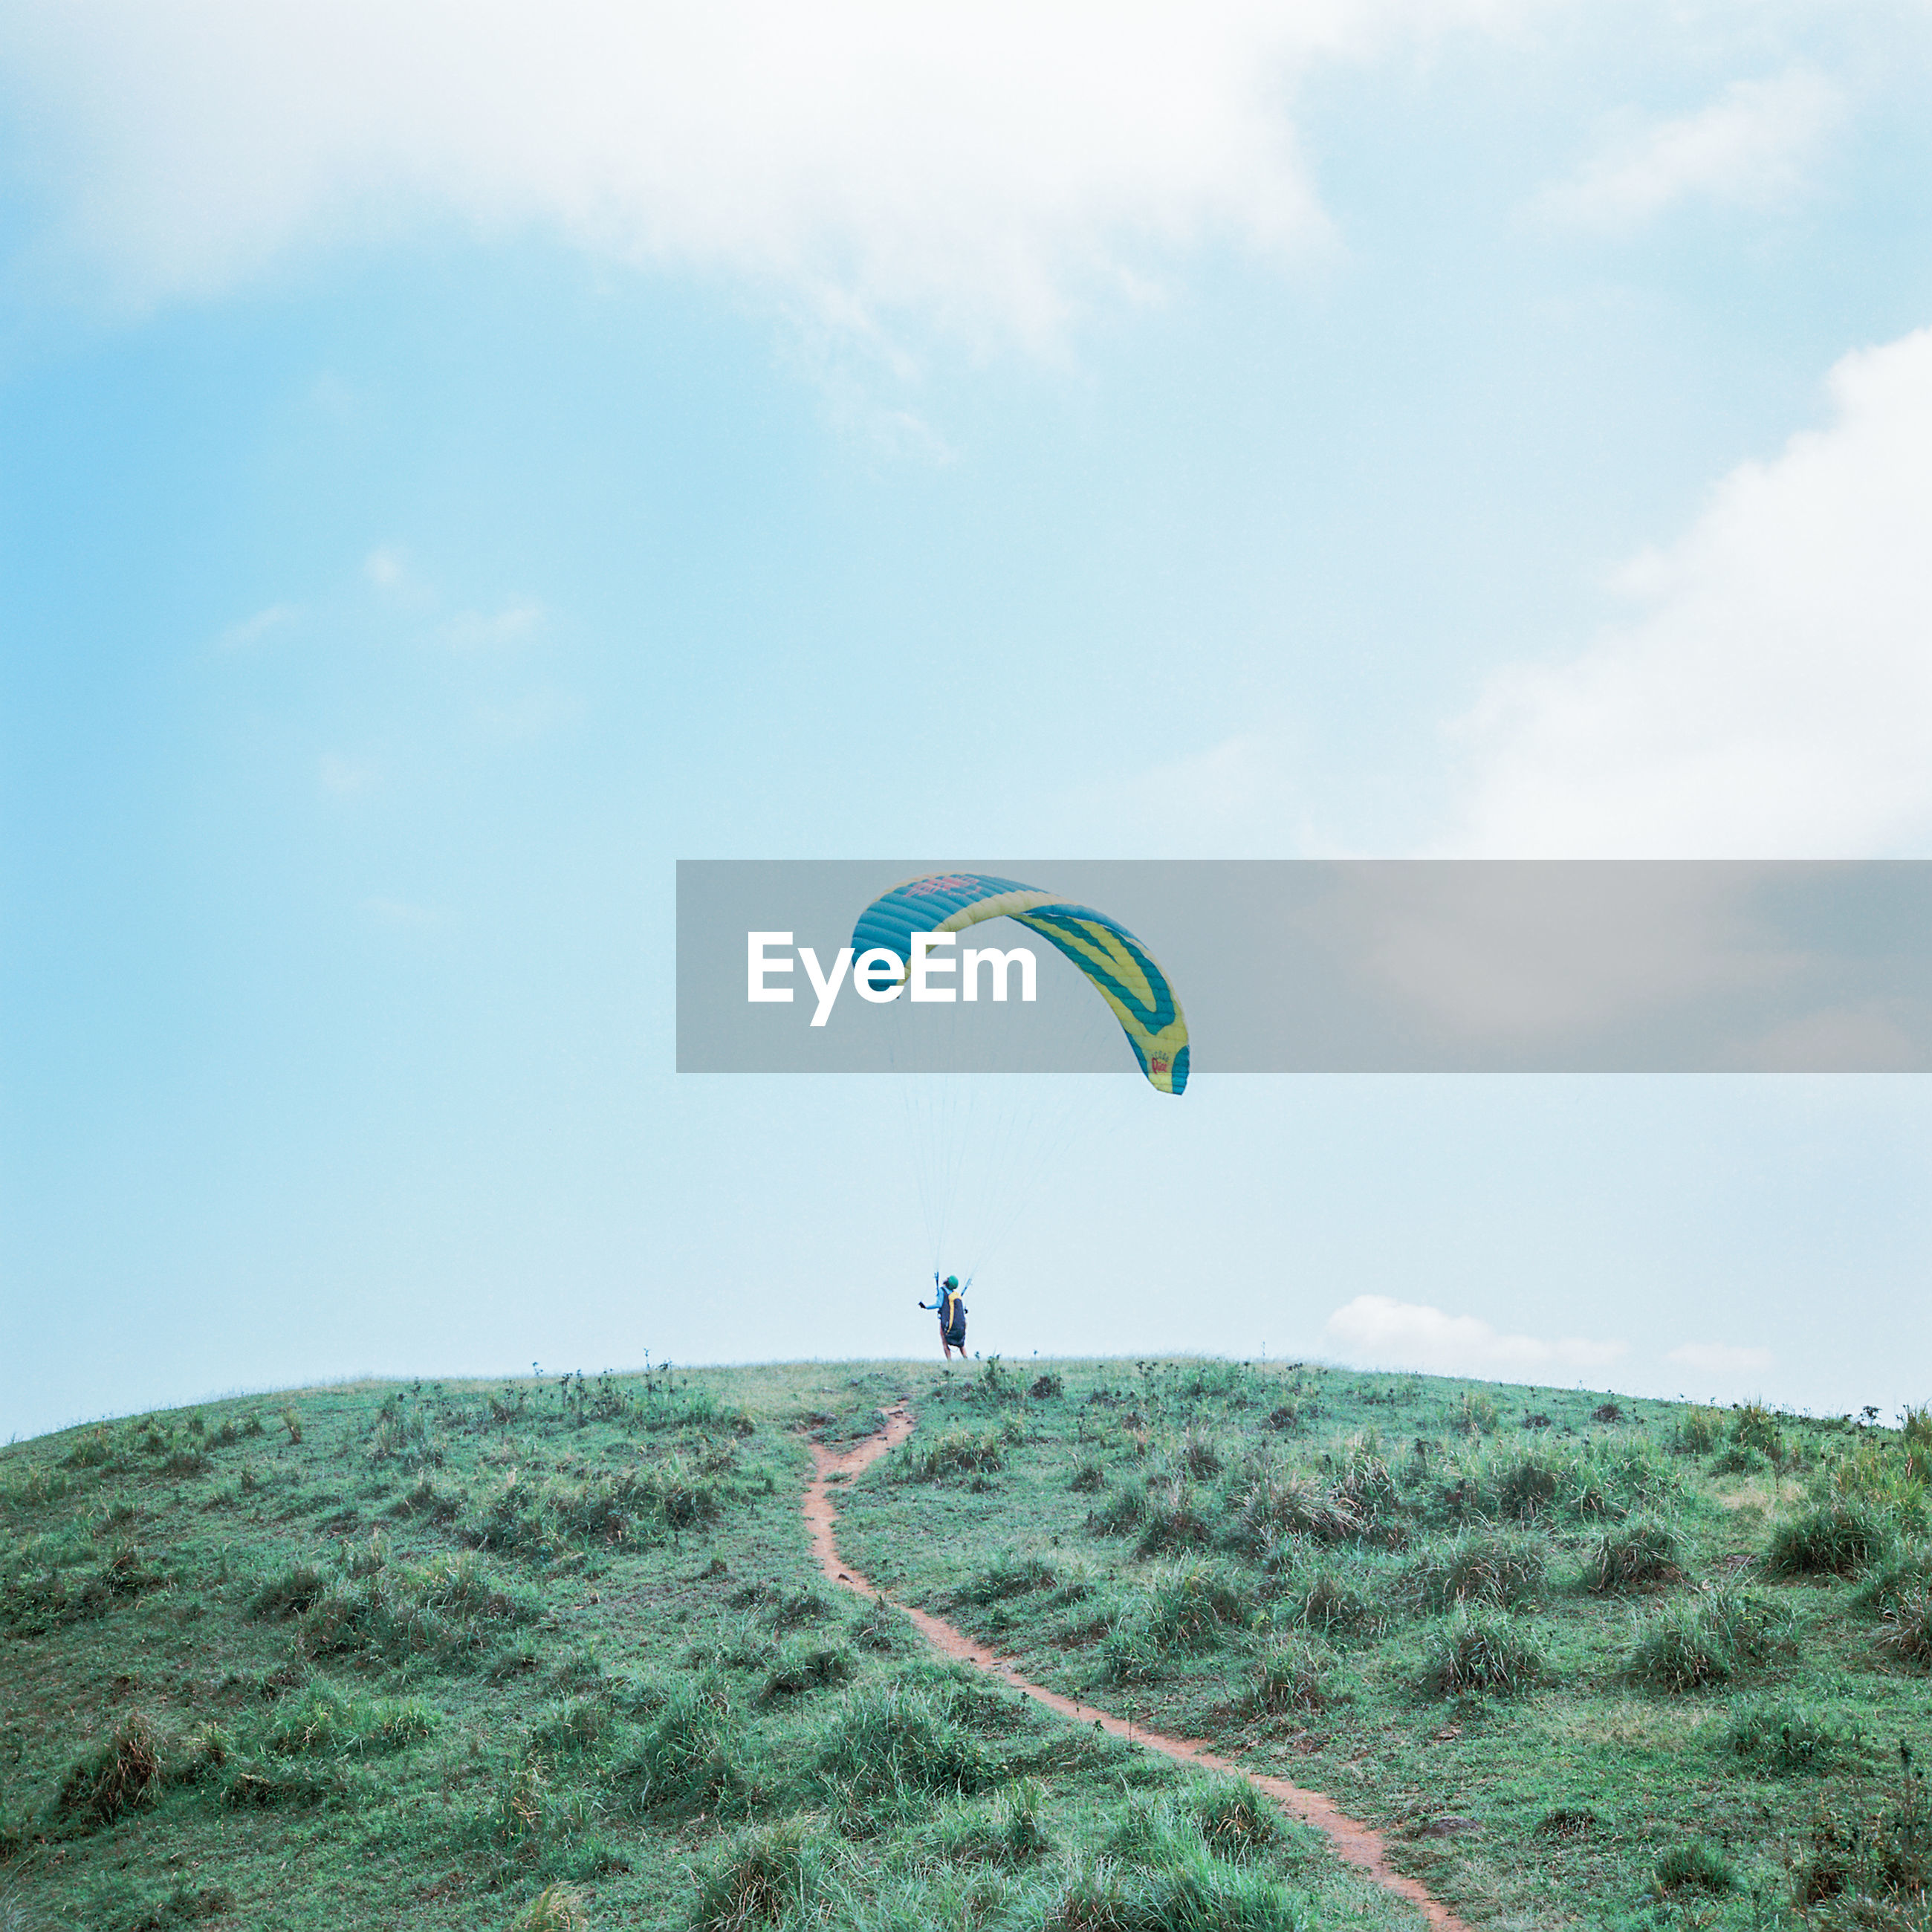 PEOPLE PARAGLIDING OVER GRASSY FIELD AGAINST SKY